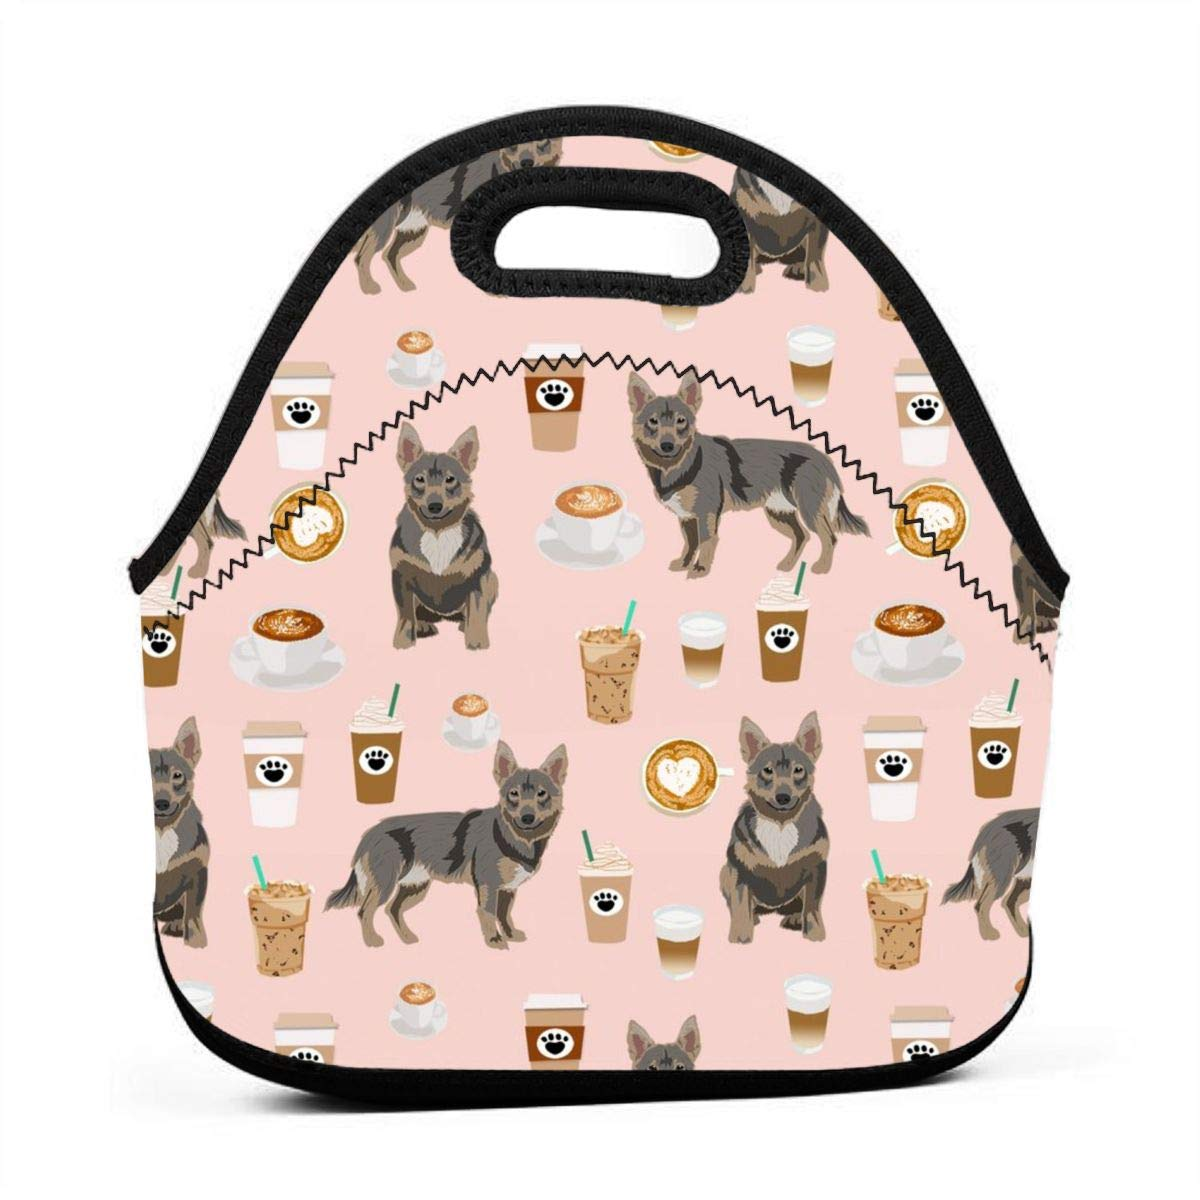 Dog Dog Breeds Pink Lunch Bag Insulated Thermal Lunch Tote Outdoor Travel Picnic Carry Case Lunchbox Handbags with Zipper Swedish Vallhund Dog Coffees Coffee Cute Dog Swedish Vallhund